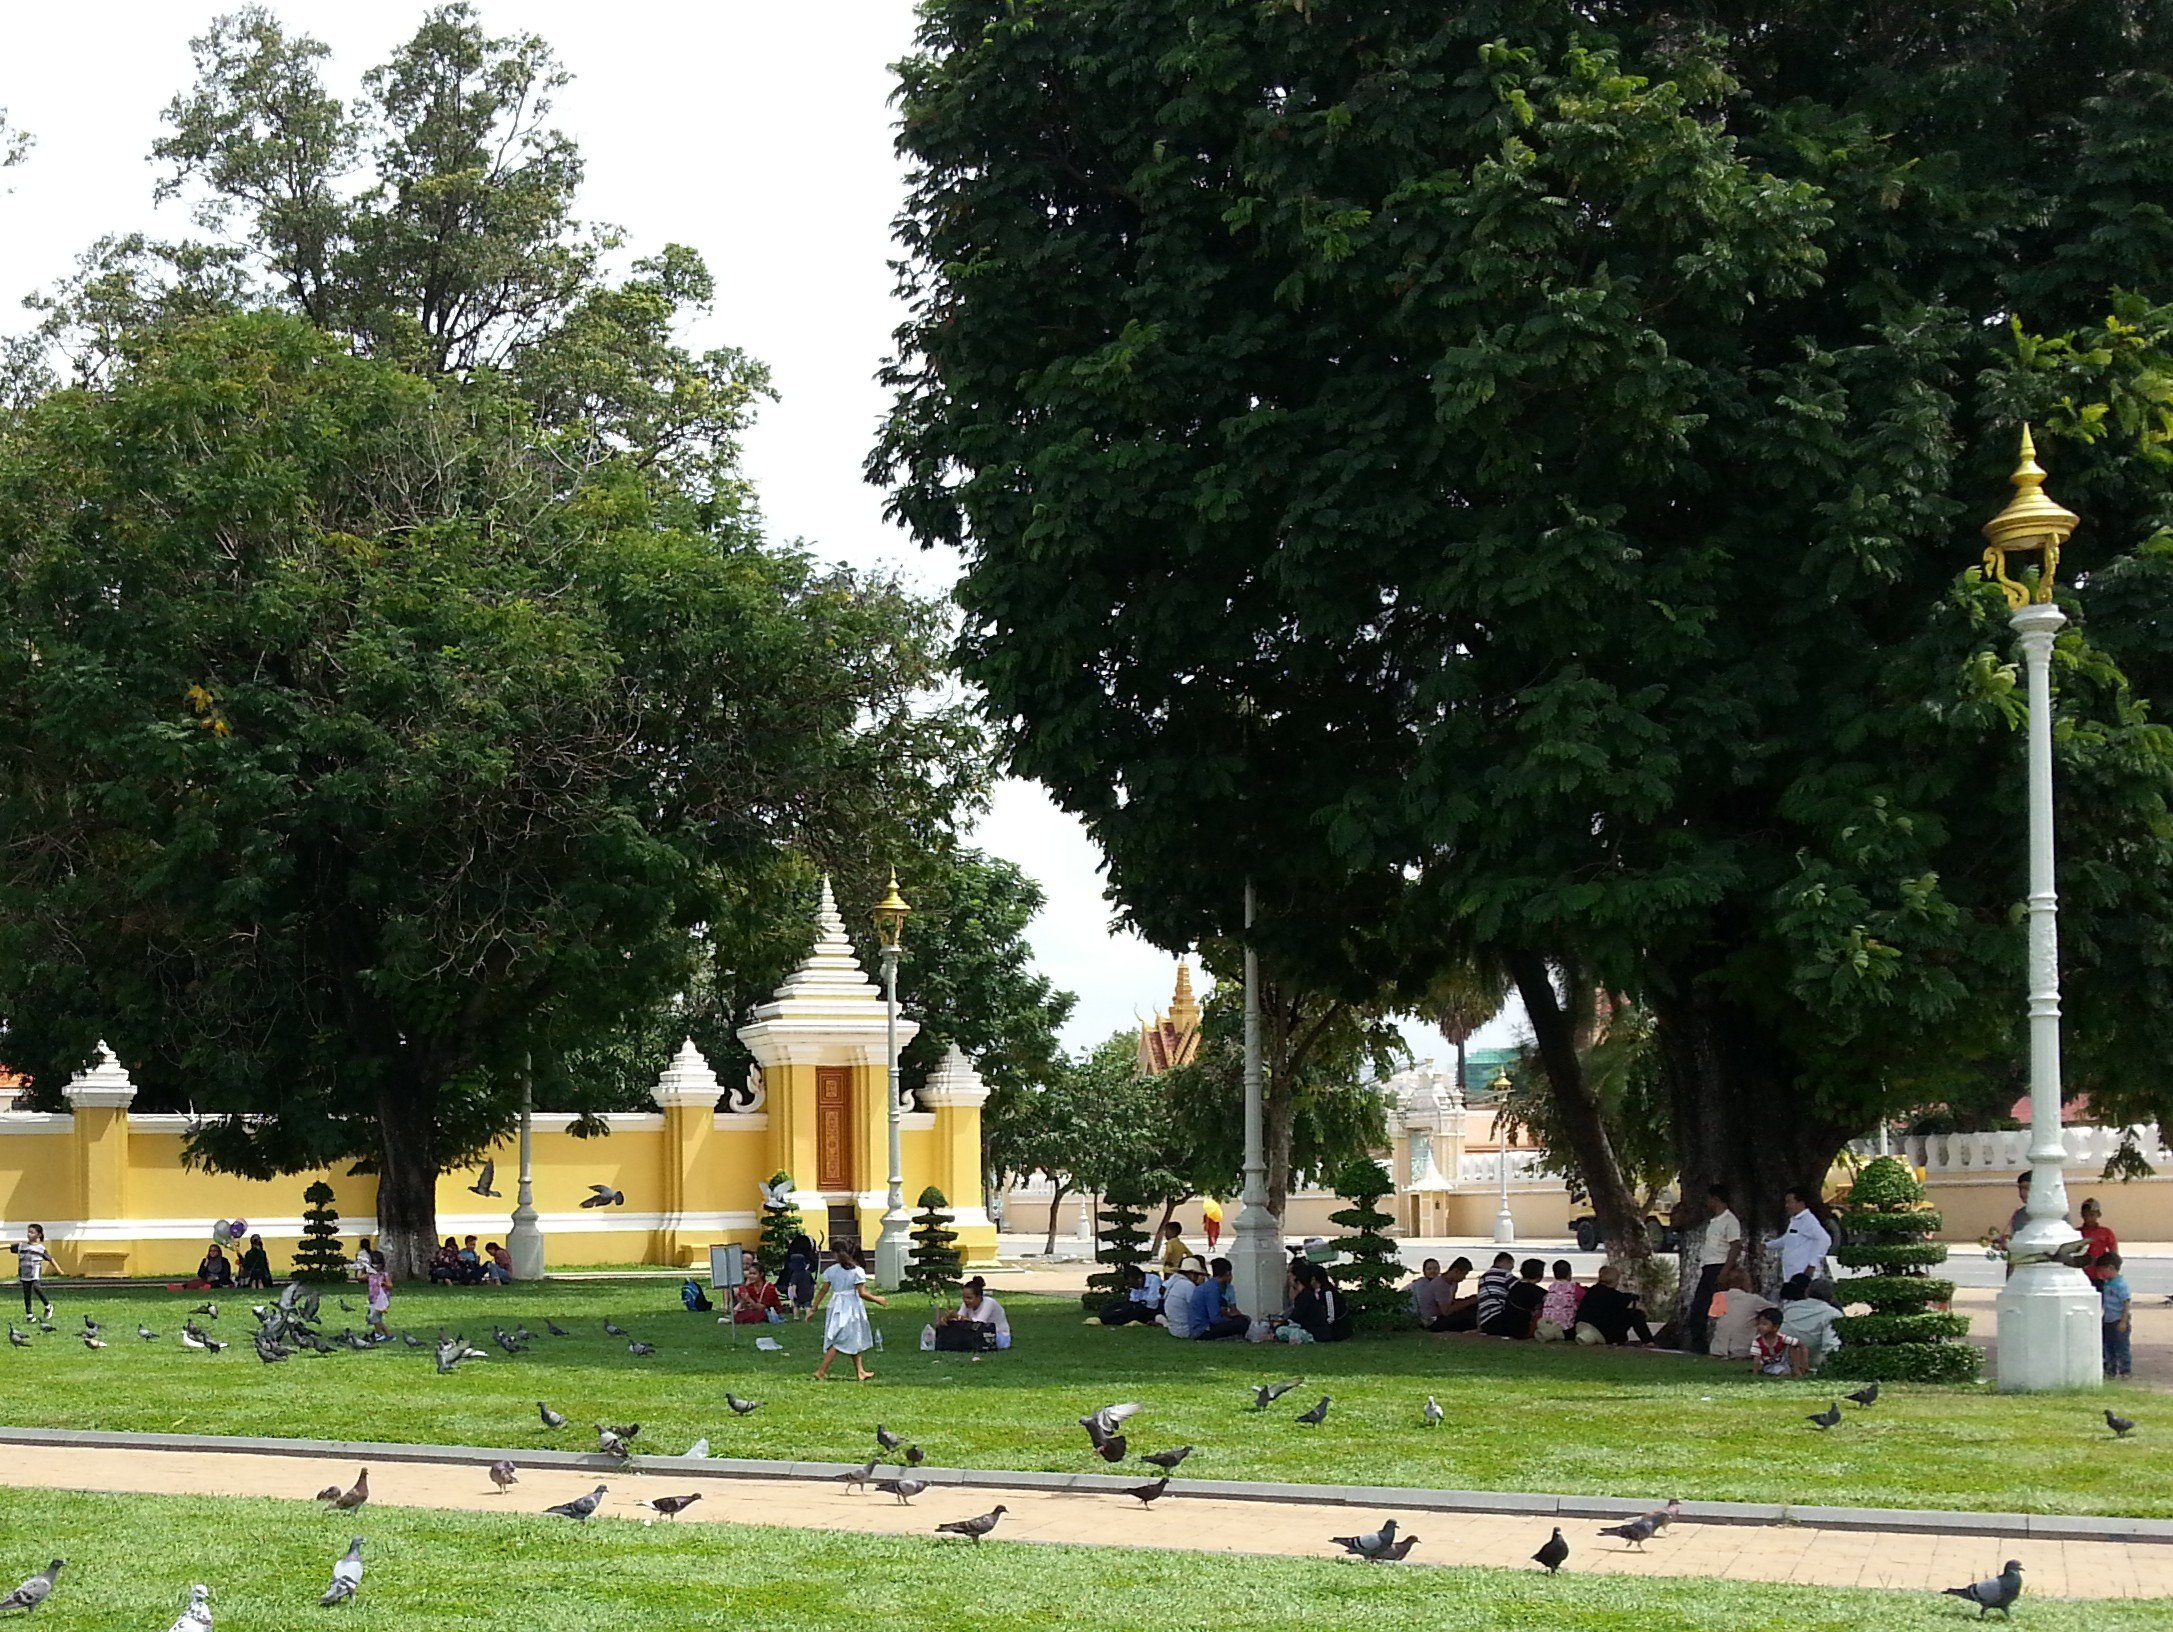 Local families enjoying a picnic in the Royal Palace Park